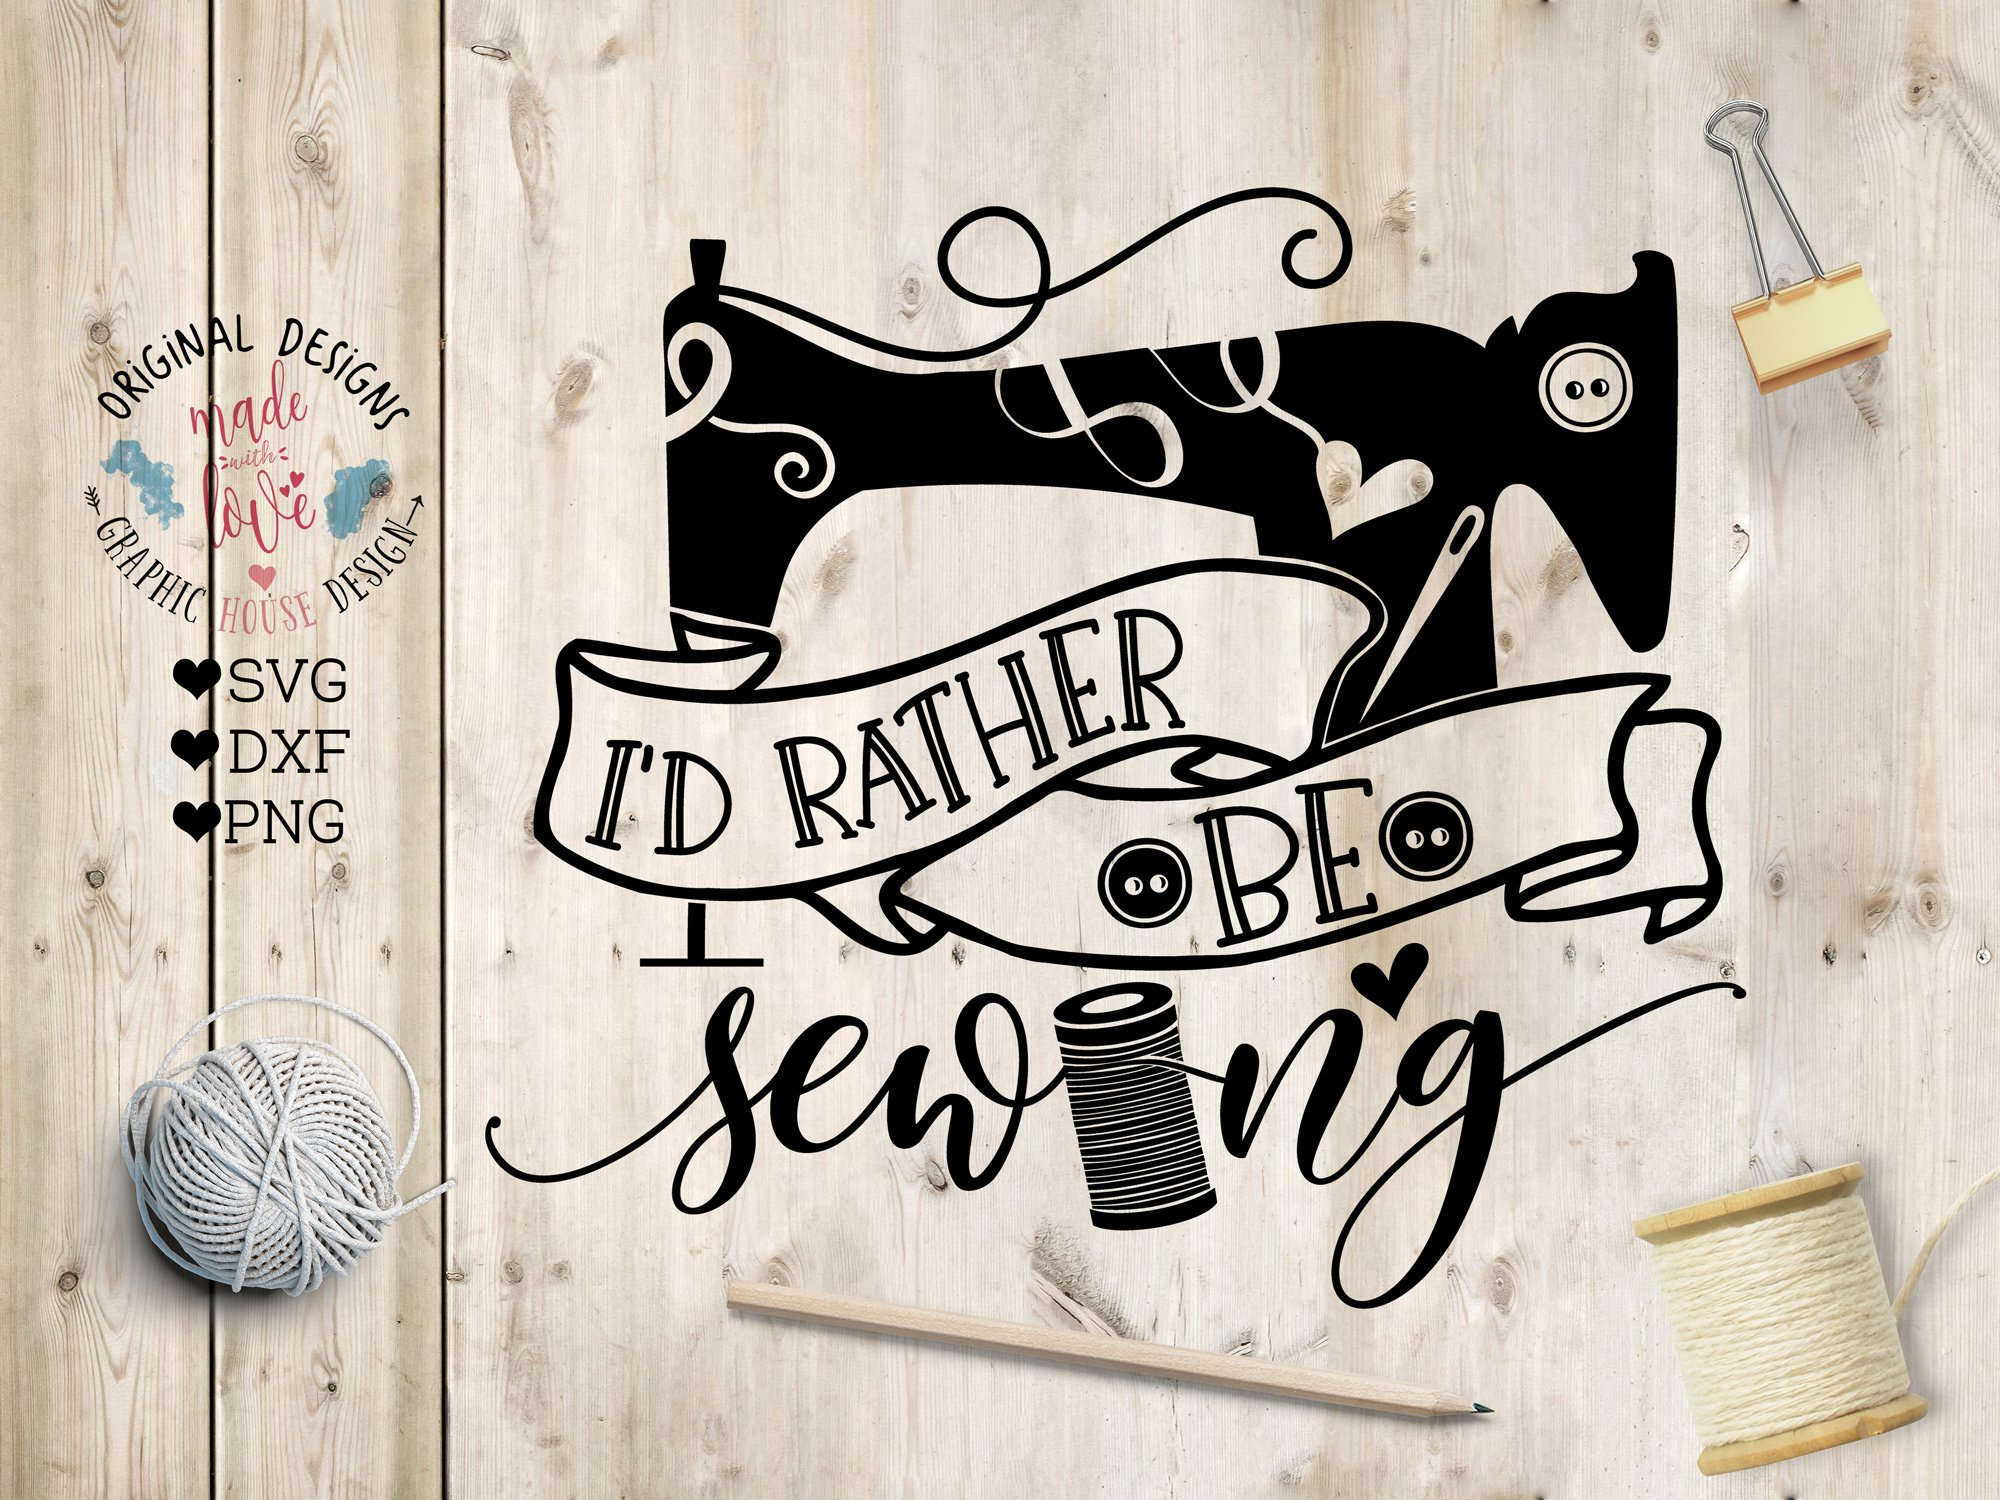 I'd Rather Be Sewing Cut File